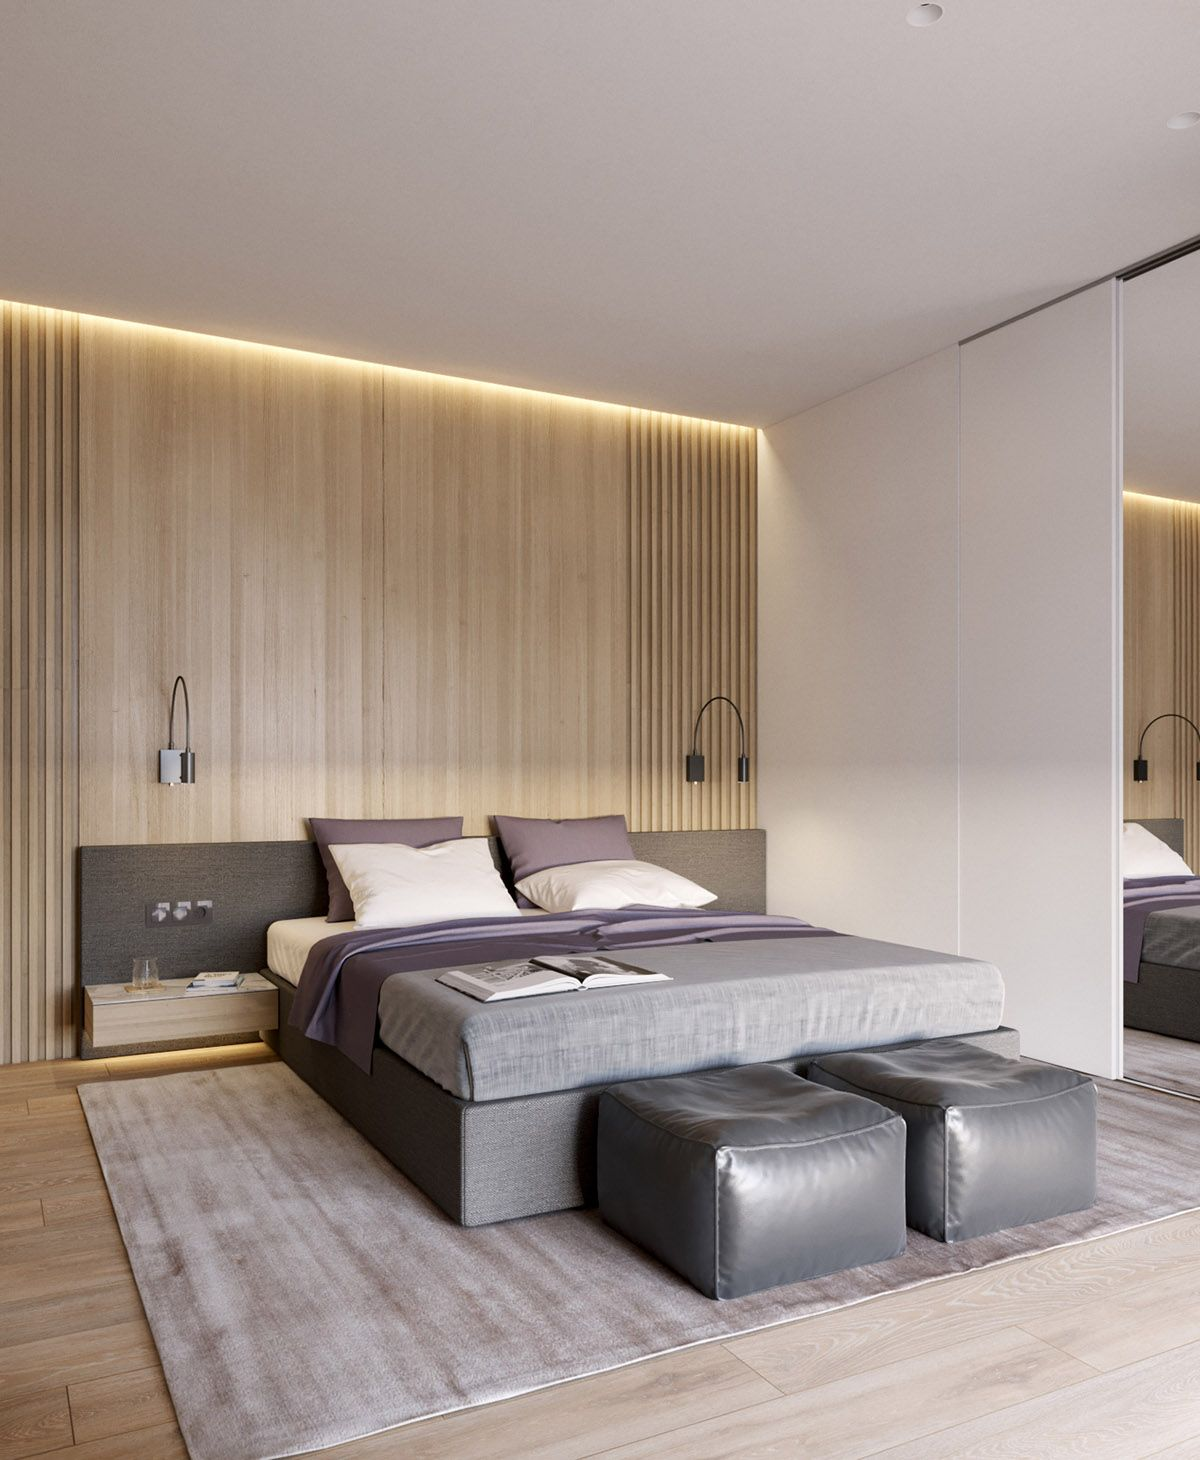 New Home Designs Latest Modern Homes Bedrooms Designs: Pastel Accents Over Expansive Light Wood In Two Modern